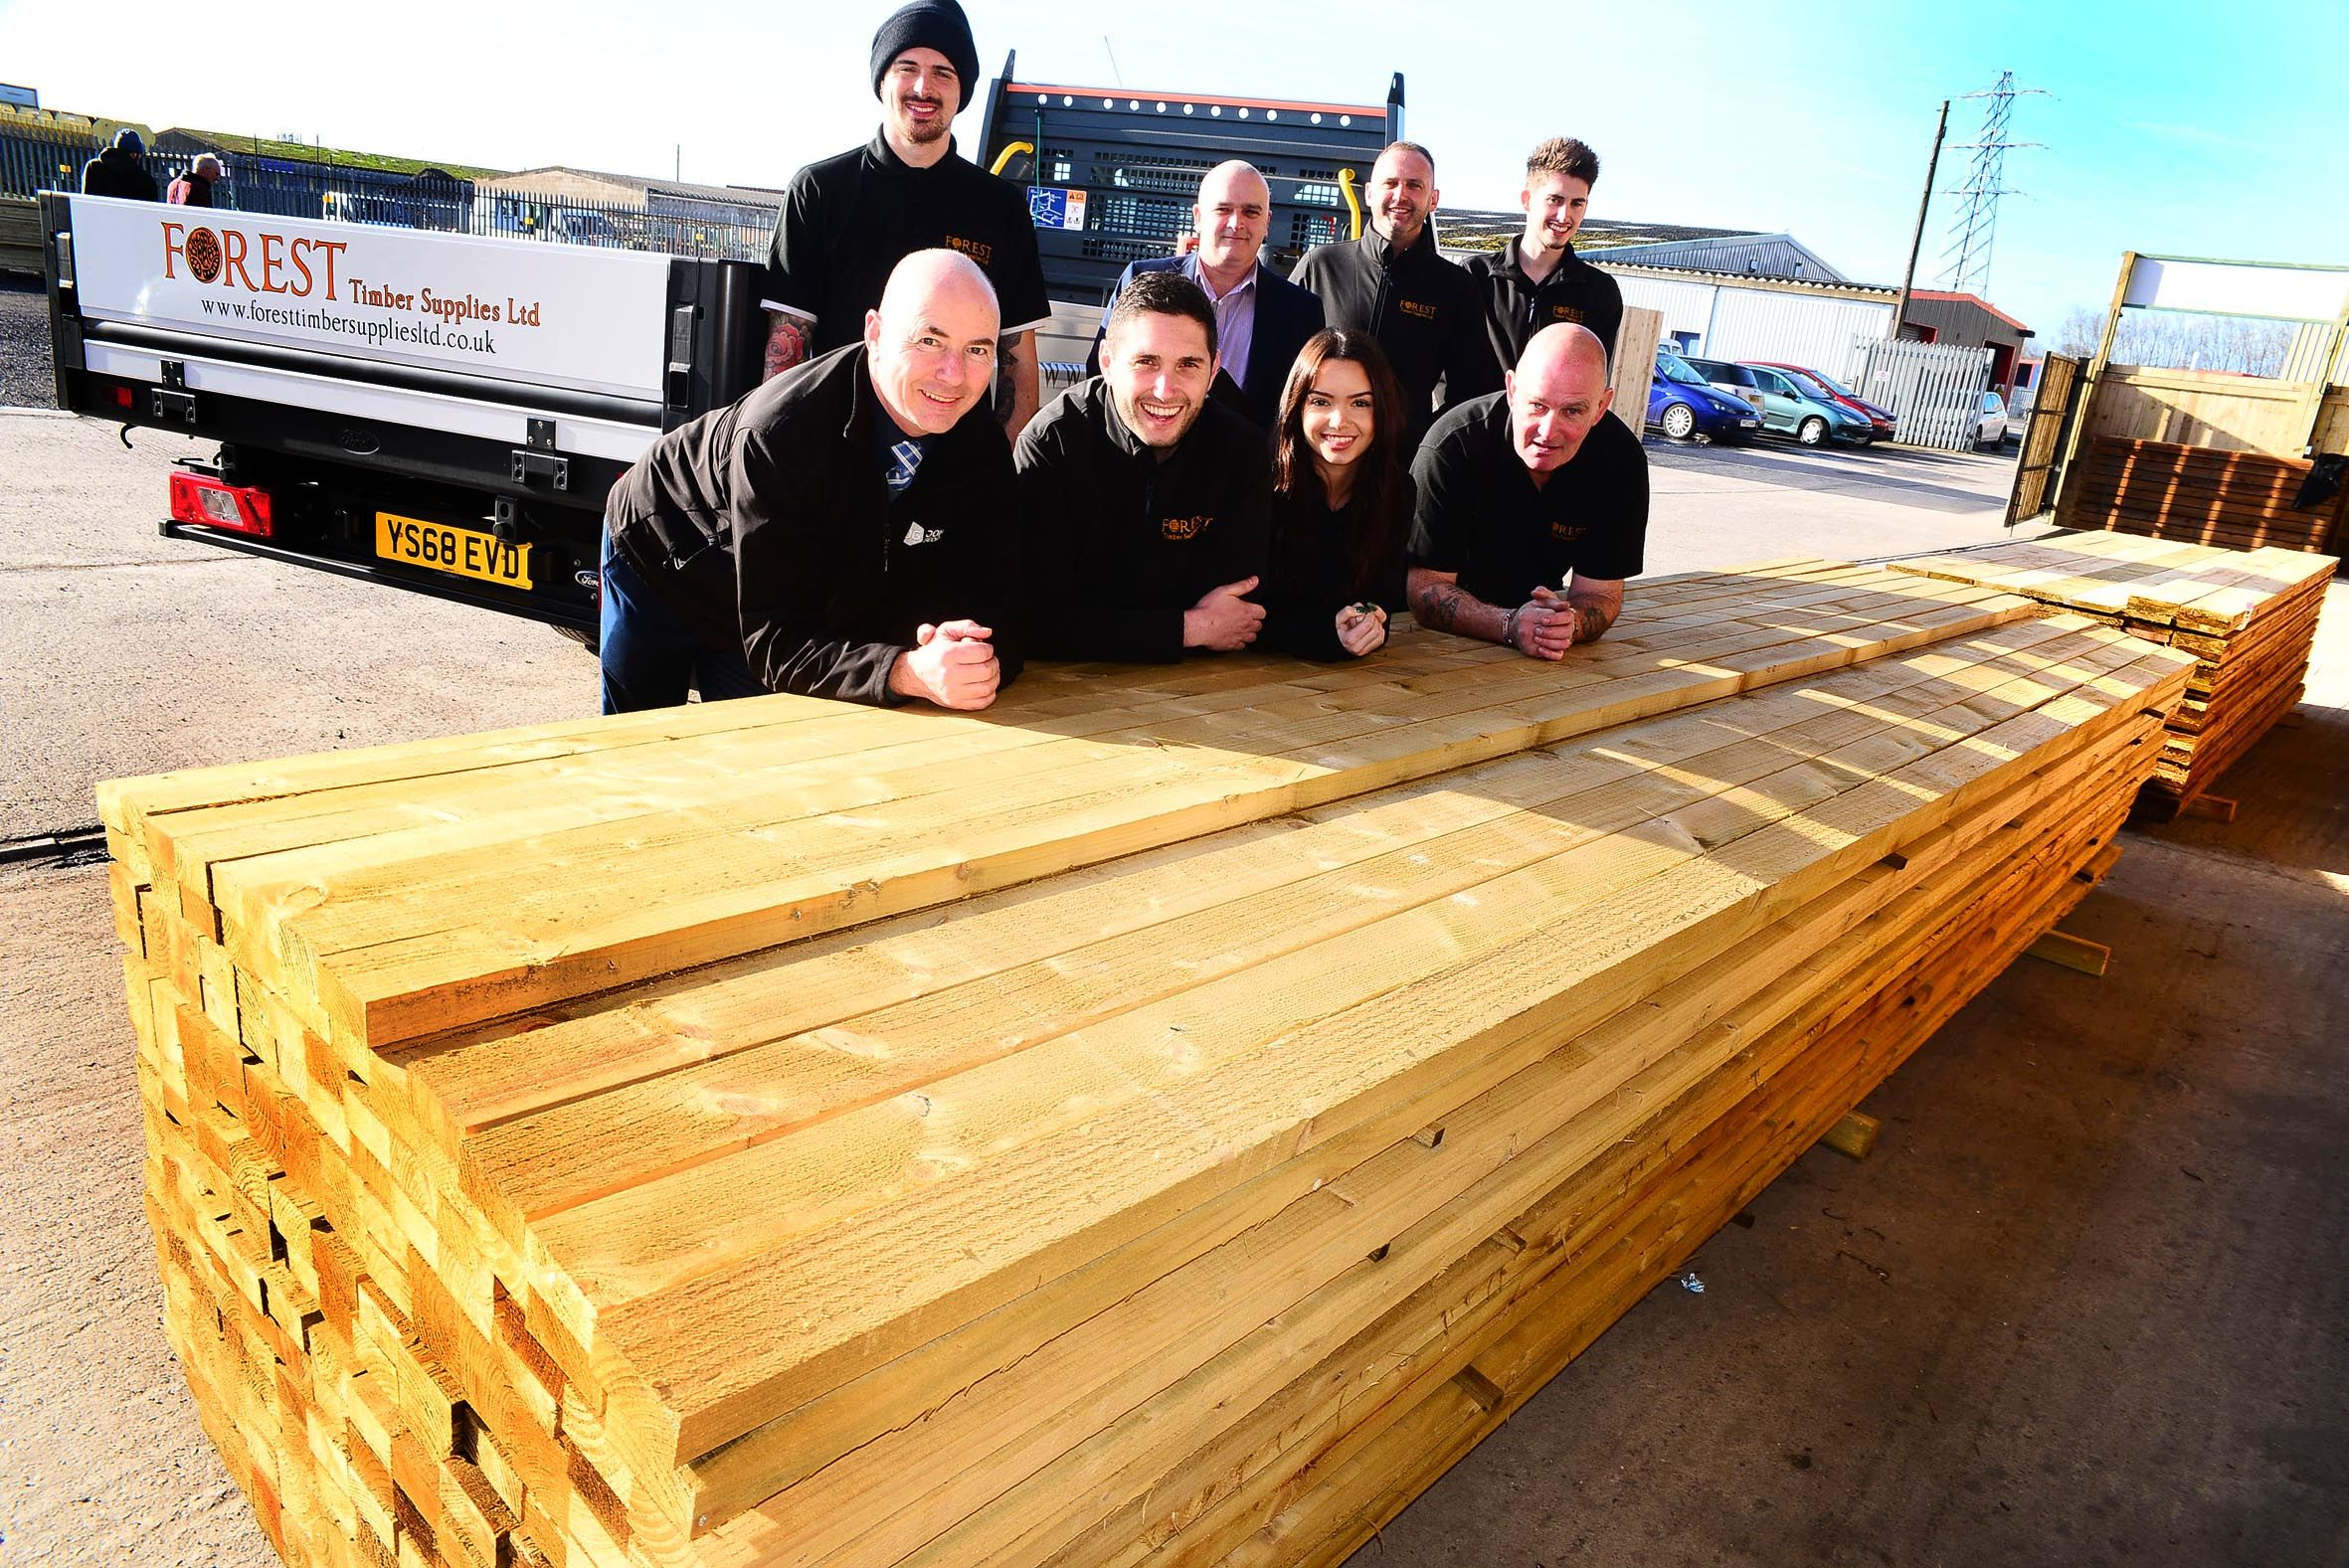 TEAM: Forest Timber Supplies Ltd had its official opening on Monday, February 11